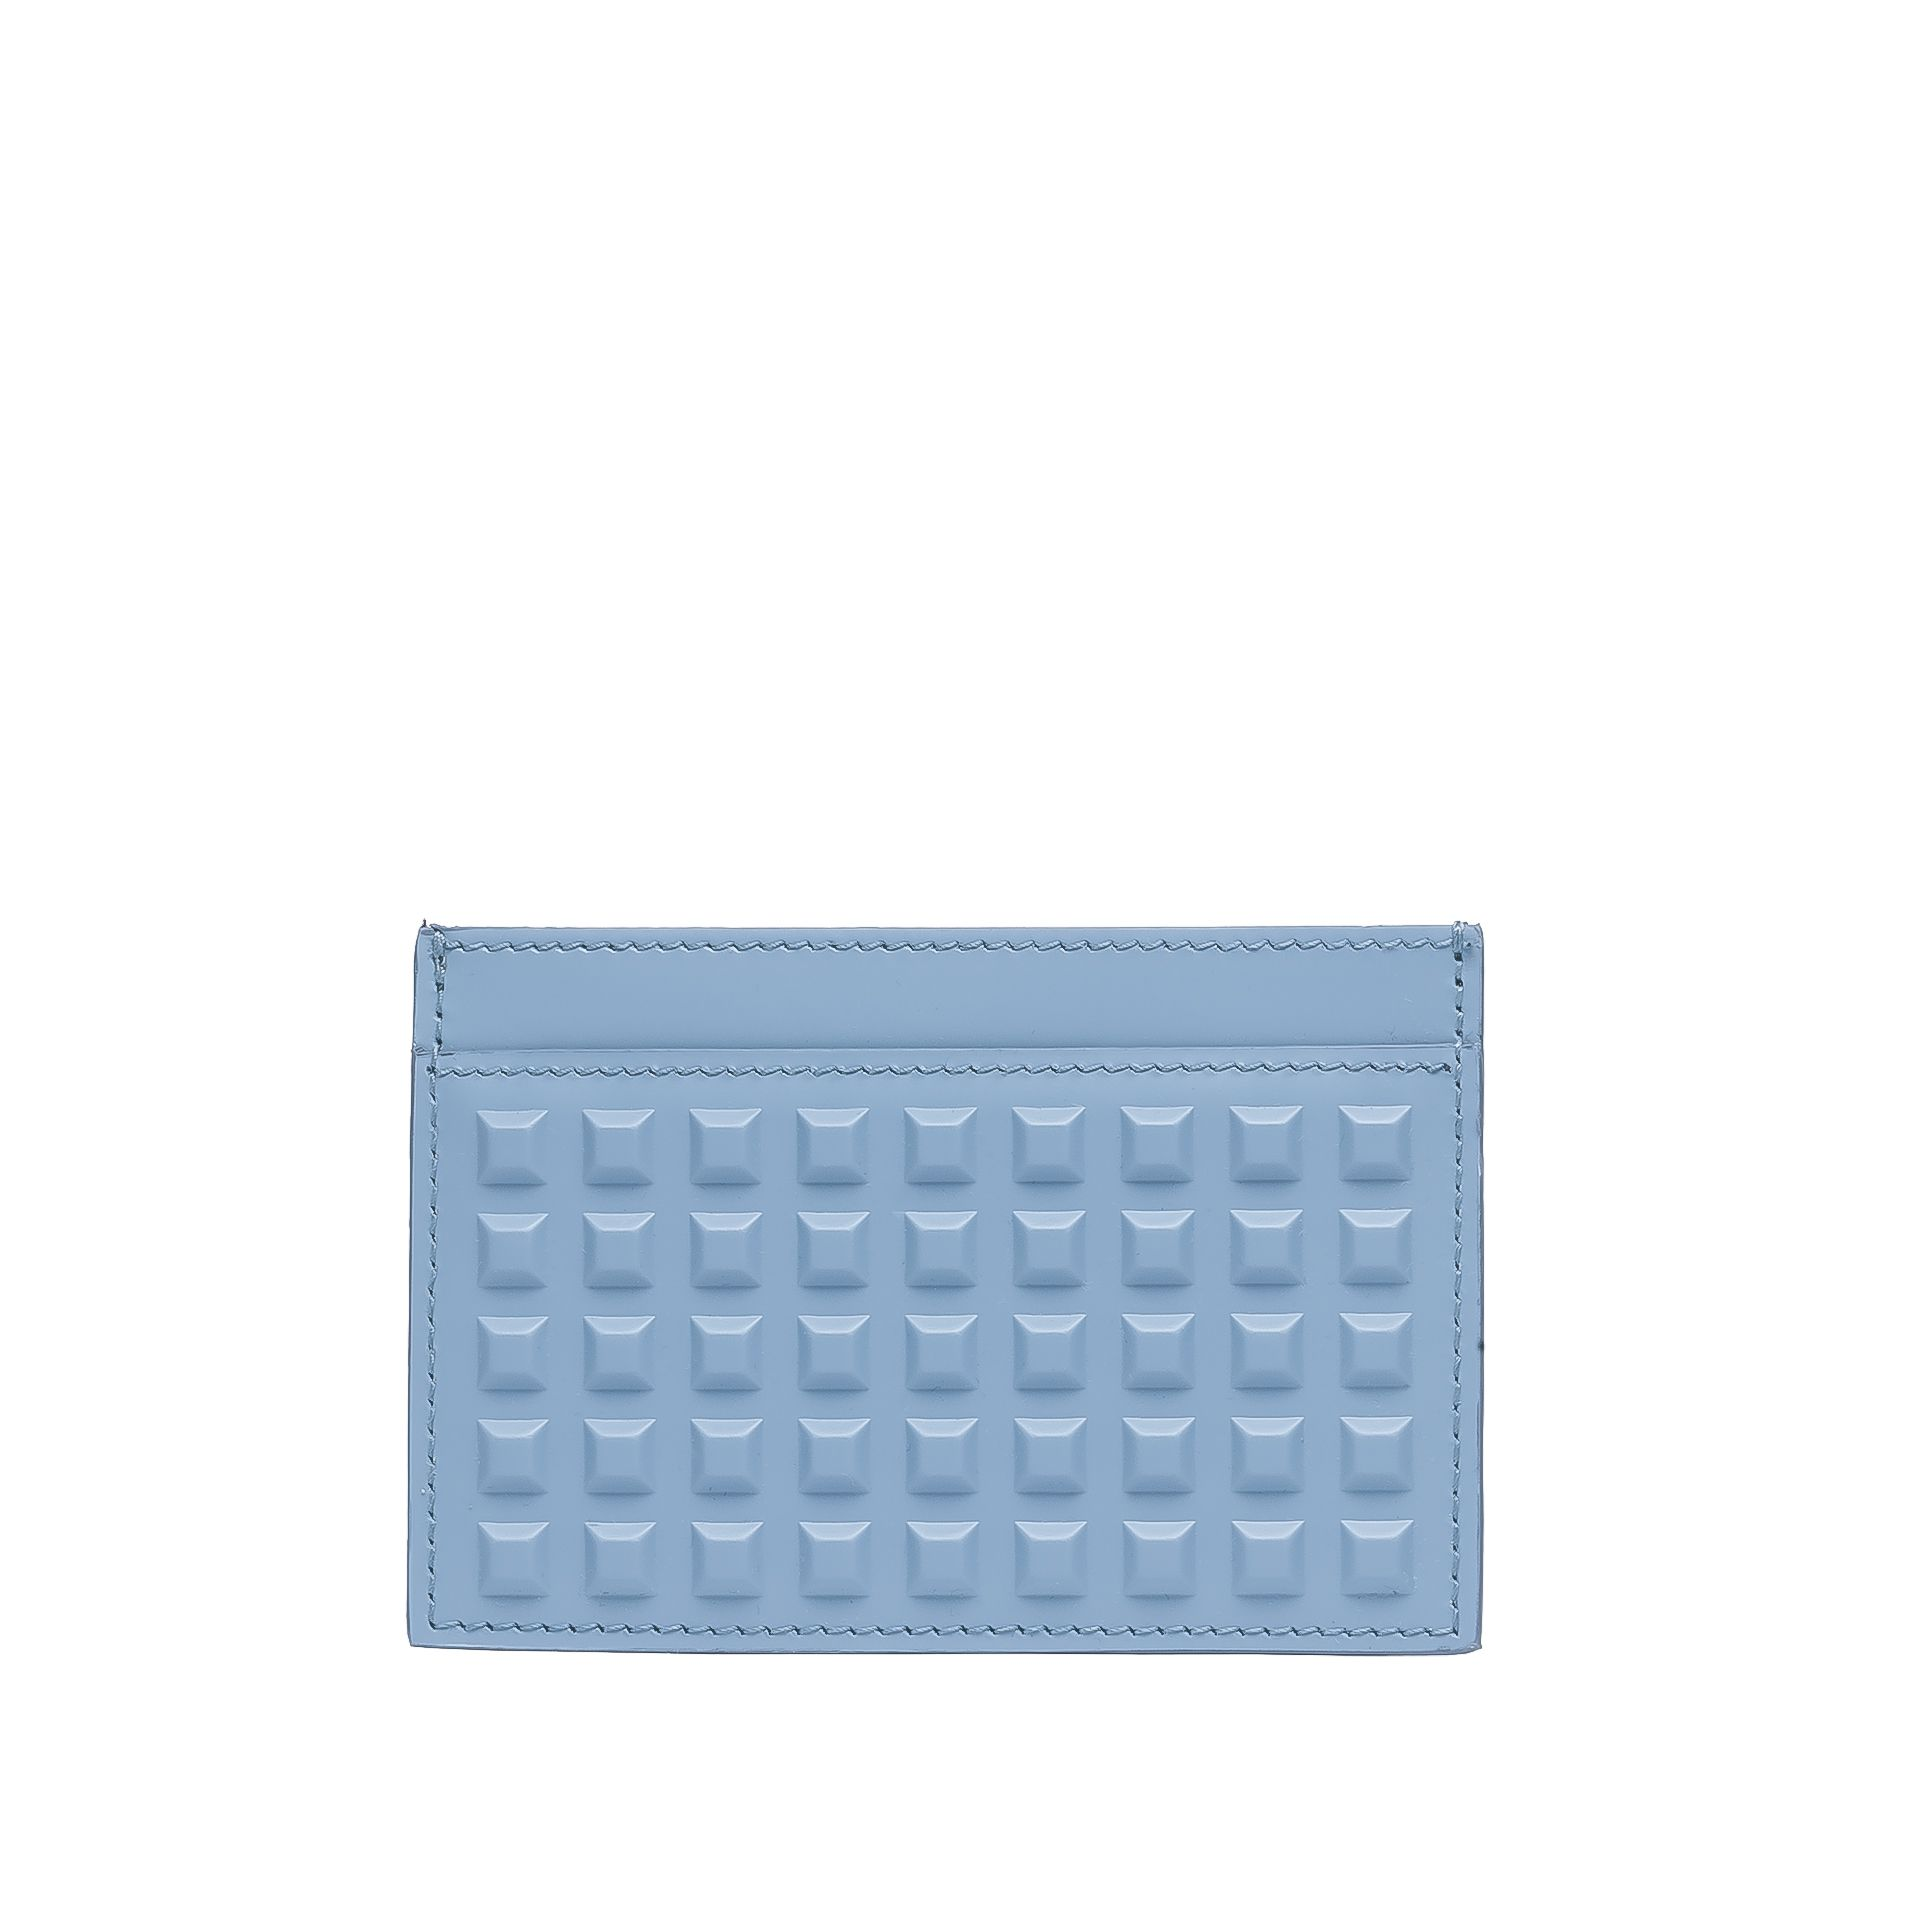 BALENCIAGA Balenciaga Single Card Grid Card Cases U f